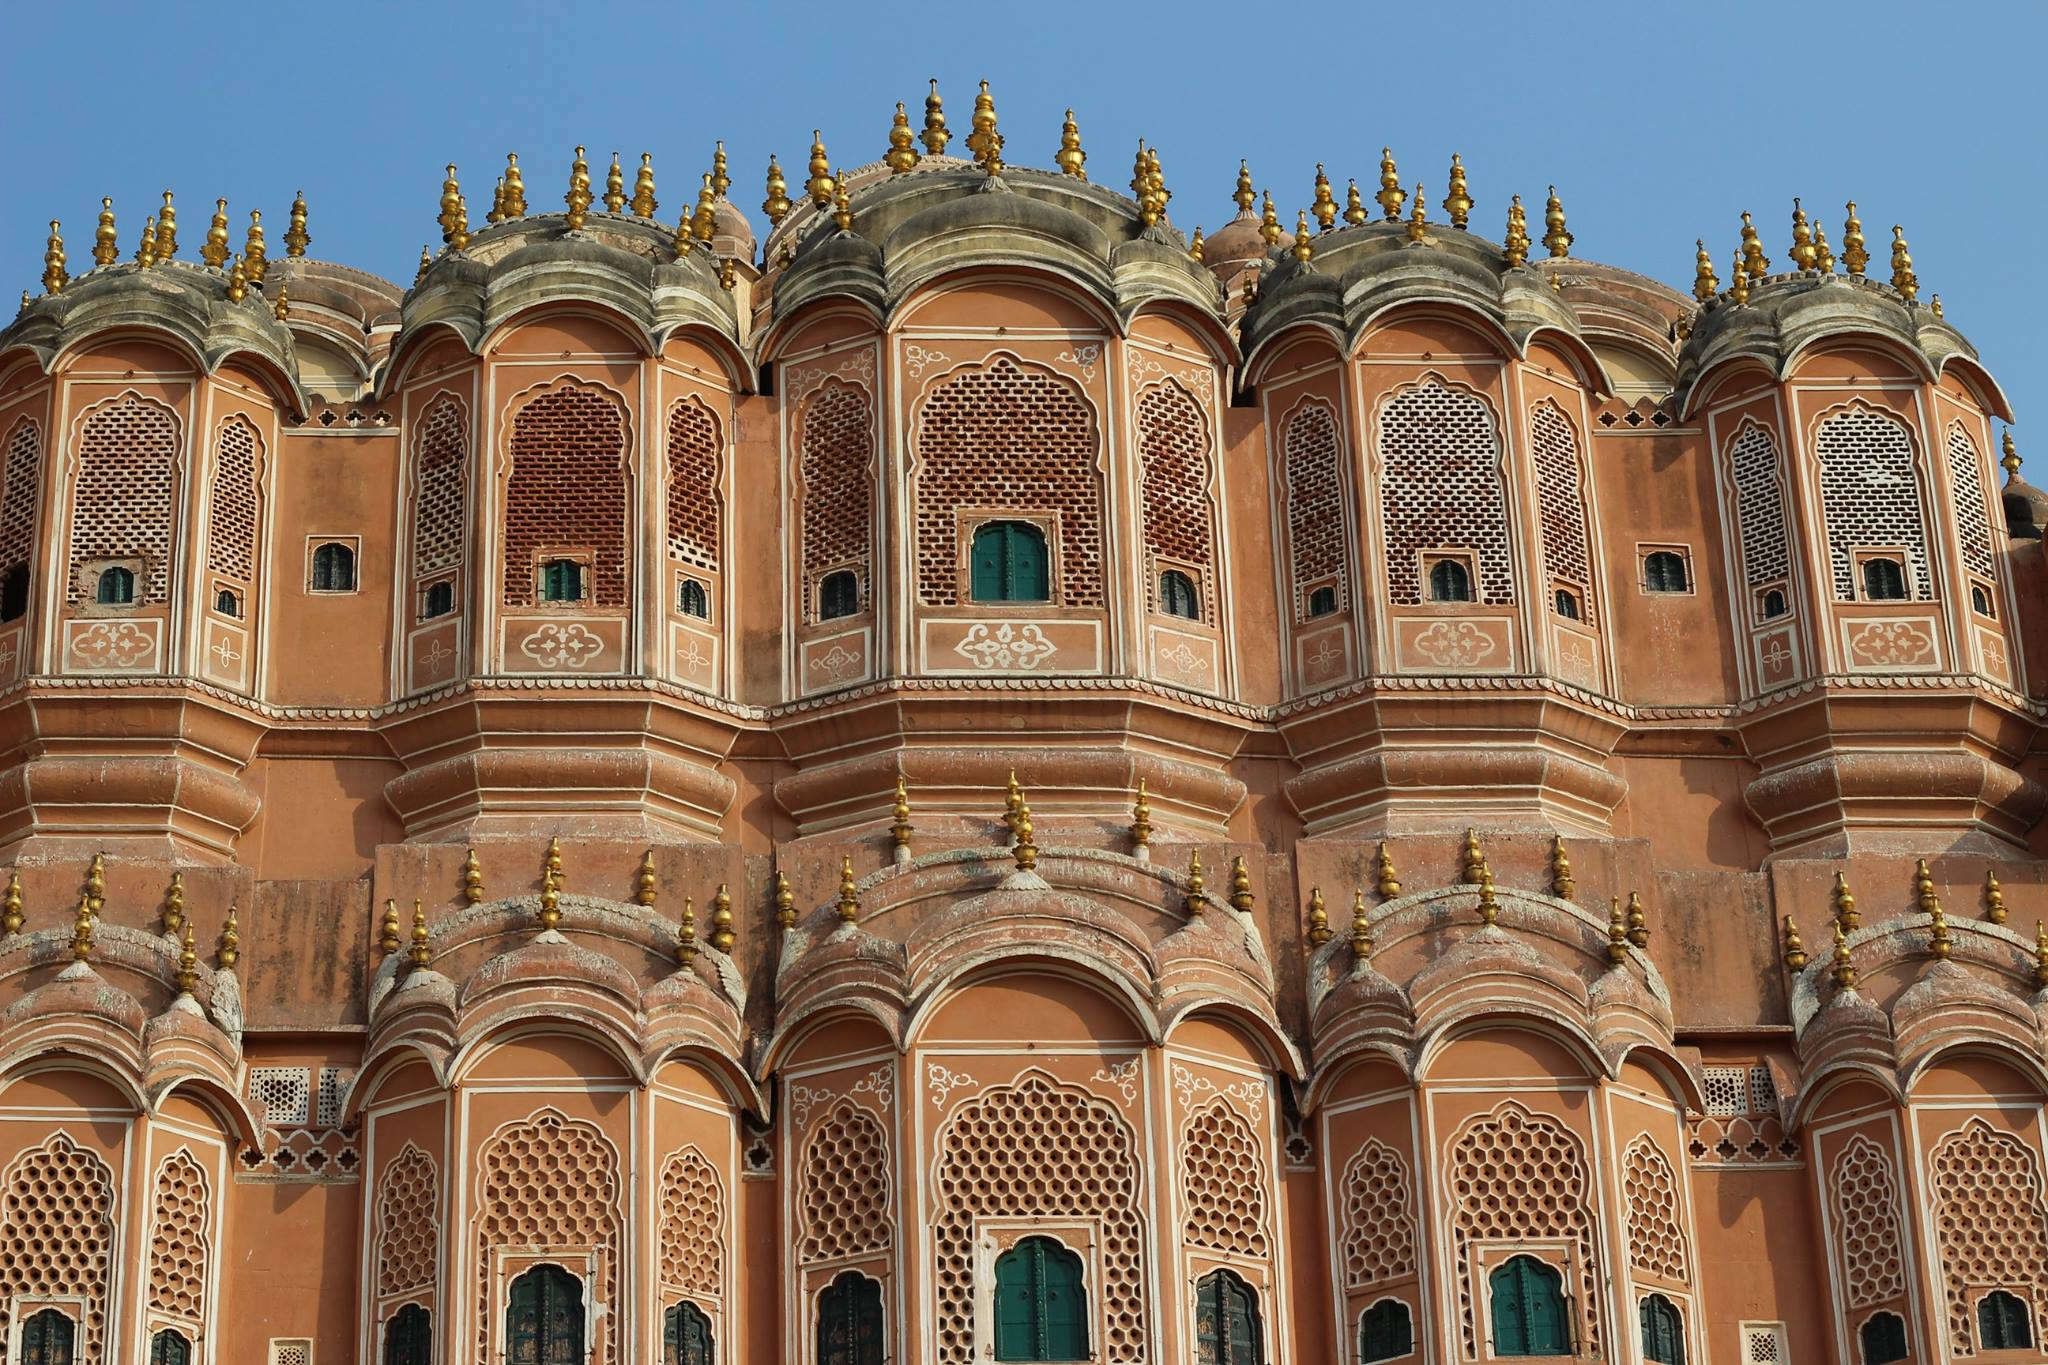 Jaipur is full of amazing structures and history